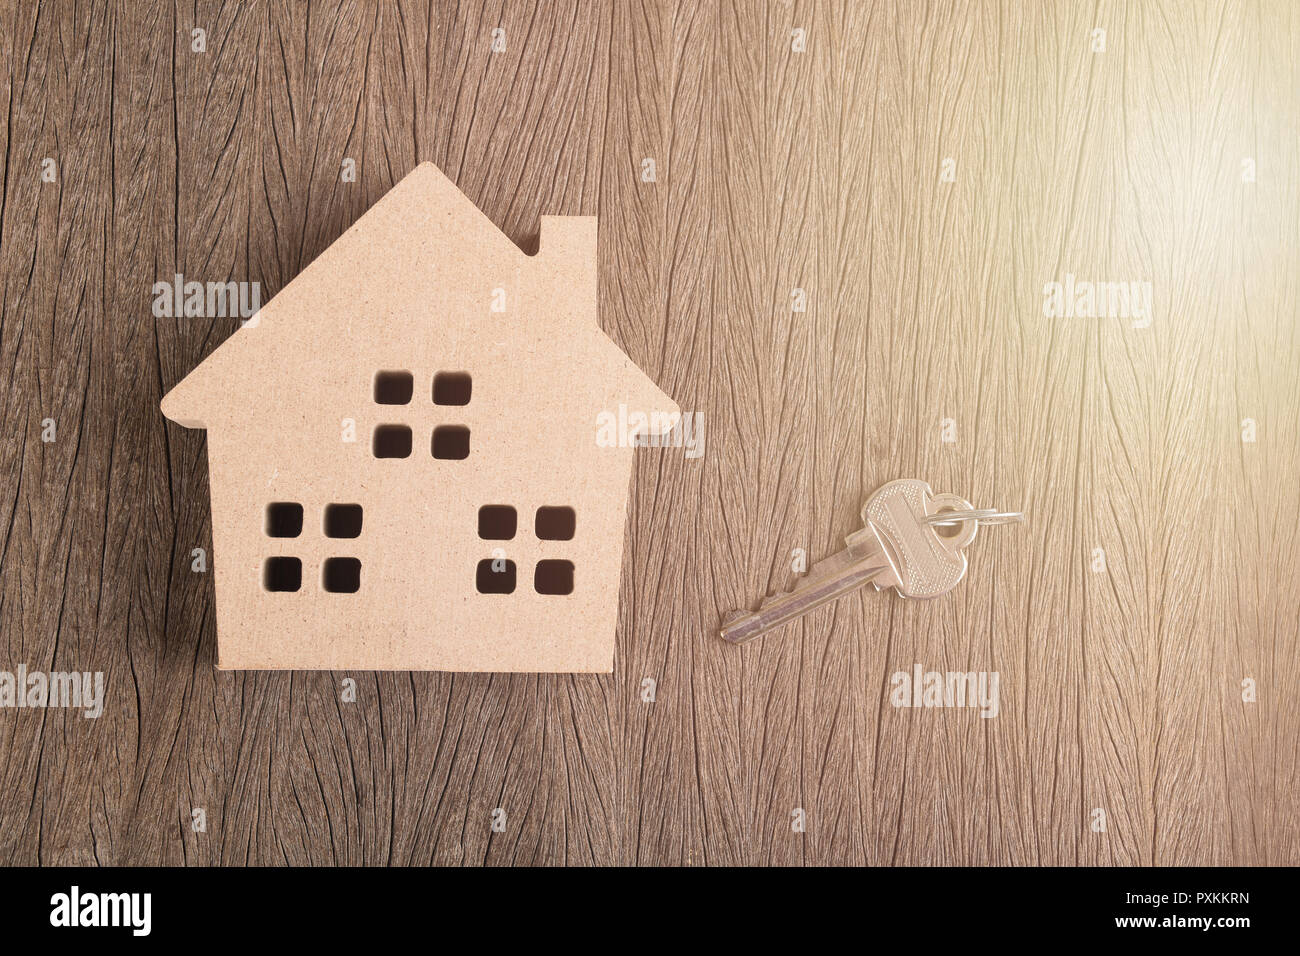 wooden house medel iwth key on wood board with morning light stock